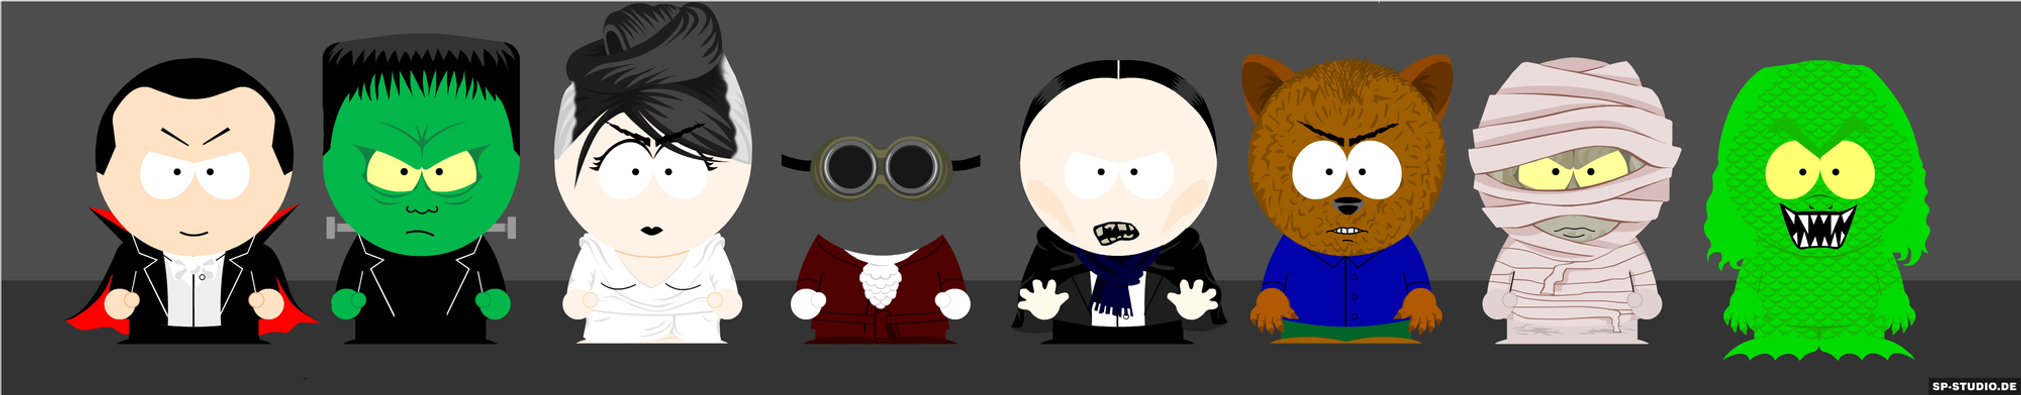 South Park-Style Classic Horror Movie Monsters by MrAngryDog